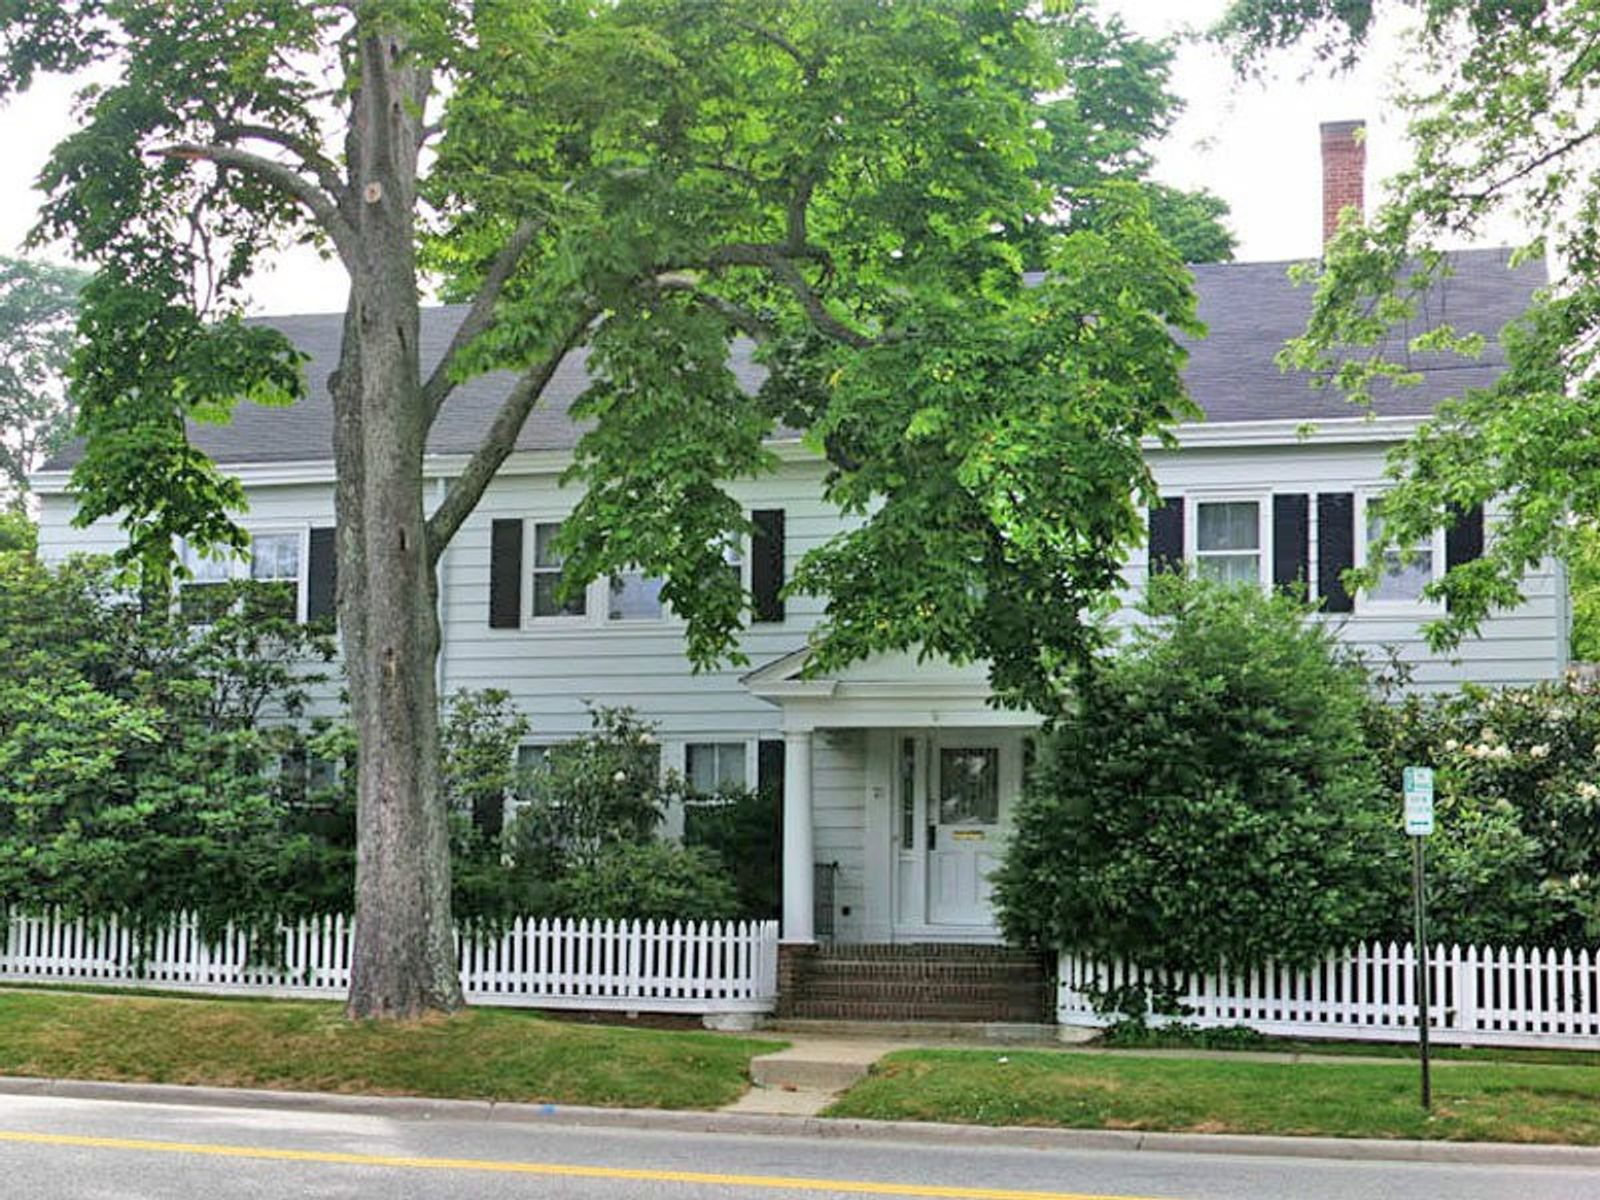 Best Village Location, East Hampton NY Single Family Home - Hamptons Real Estate